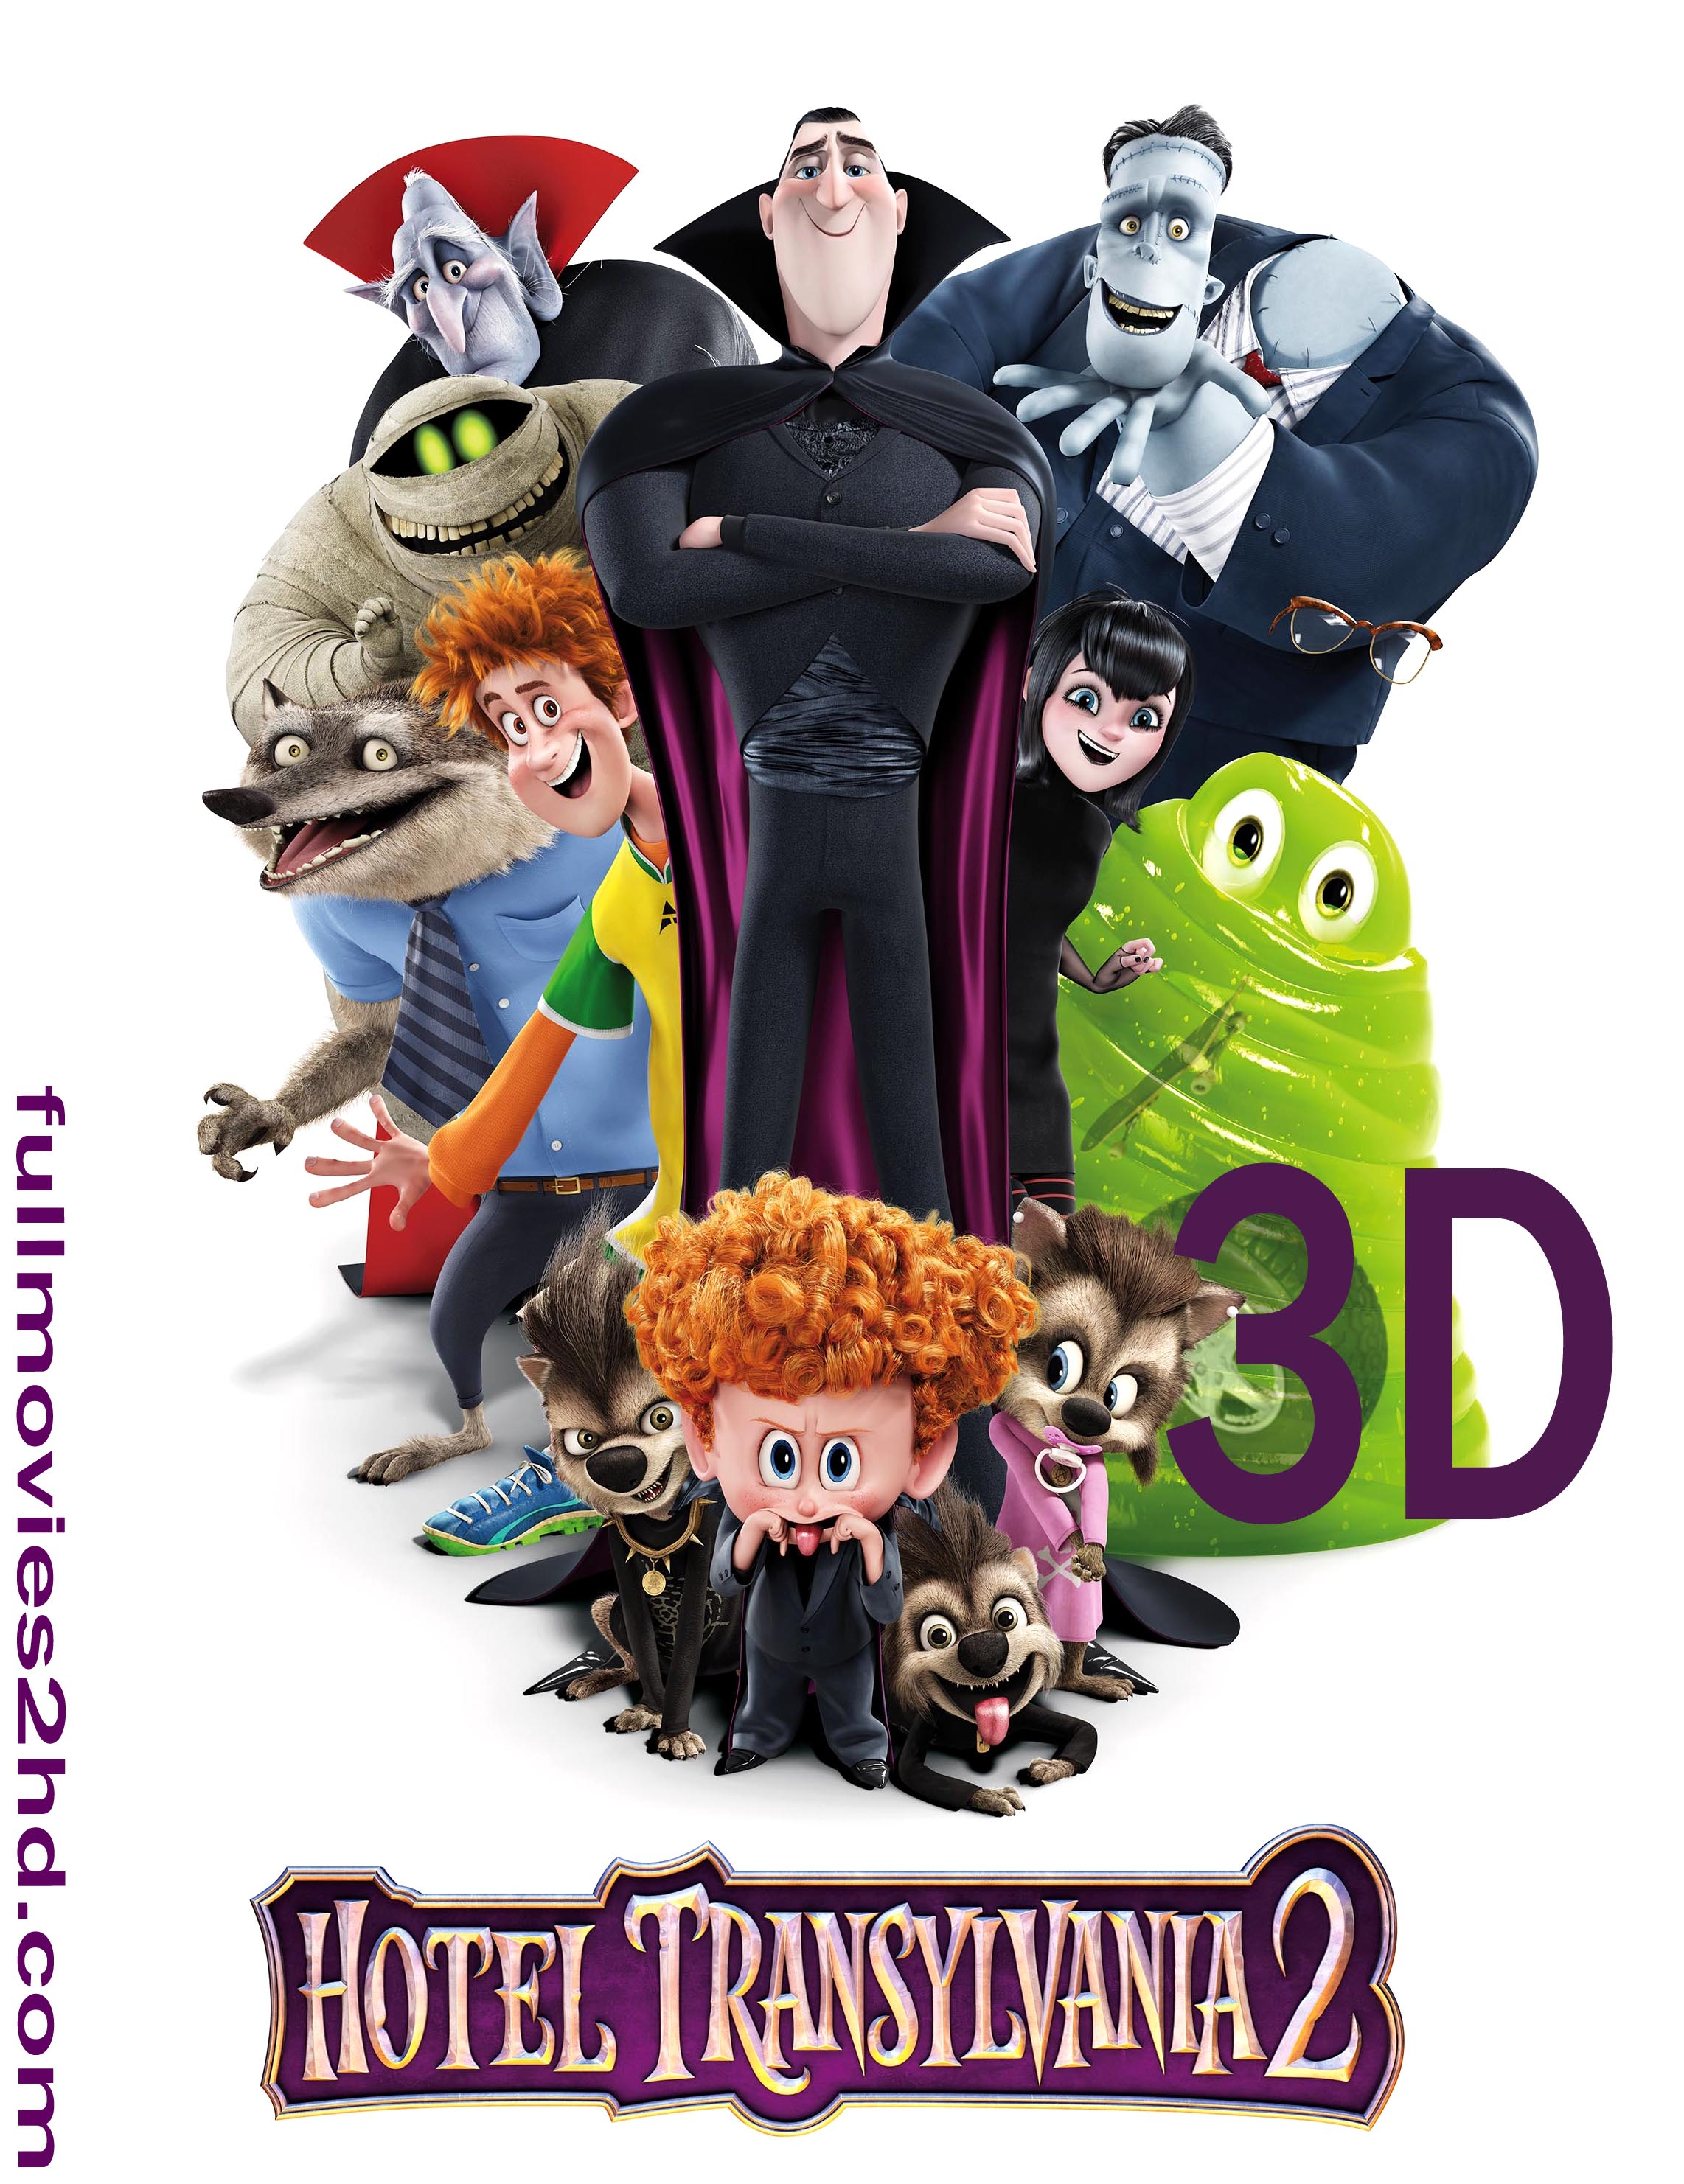 Hotel Transylvania 2 (2015) 3D 1080p BluRay Movie Free Download